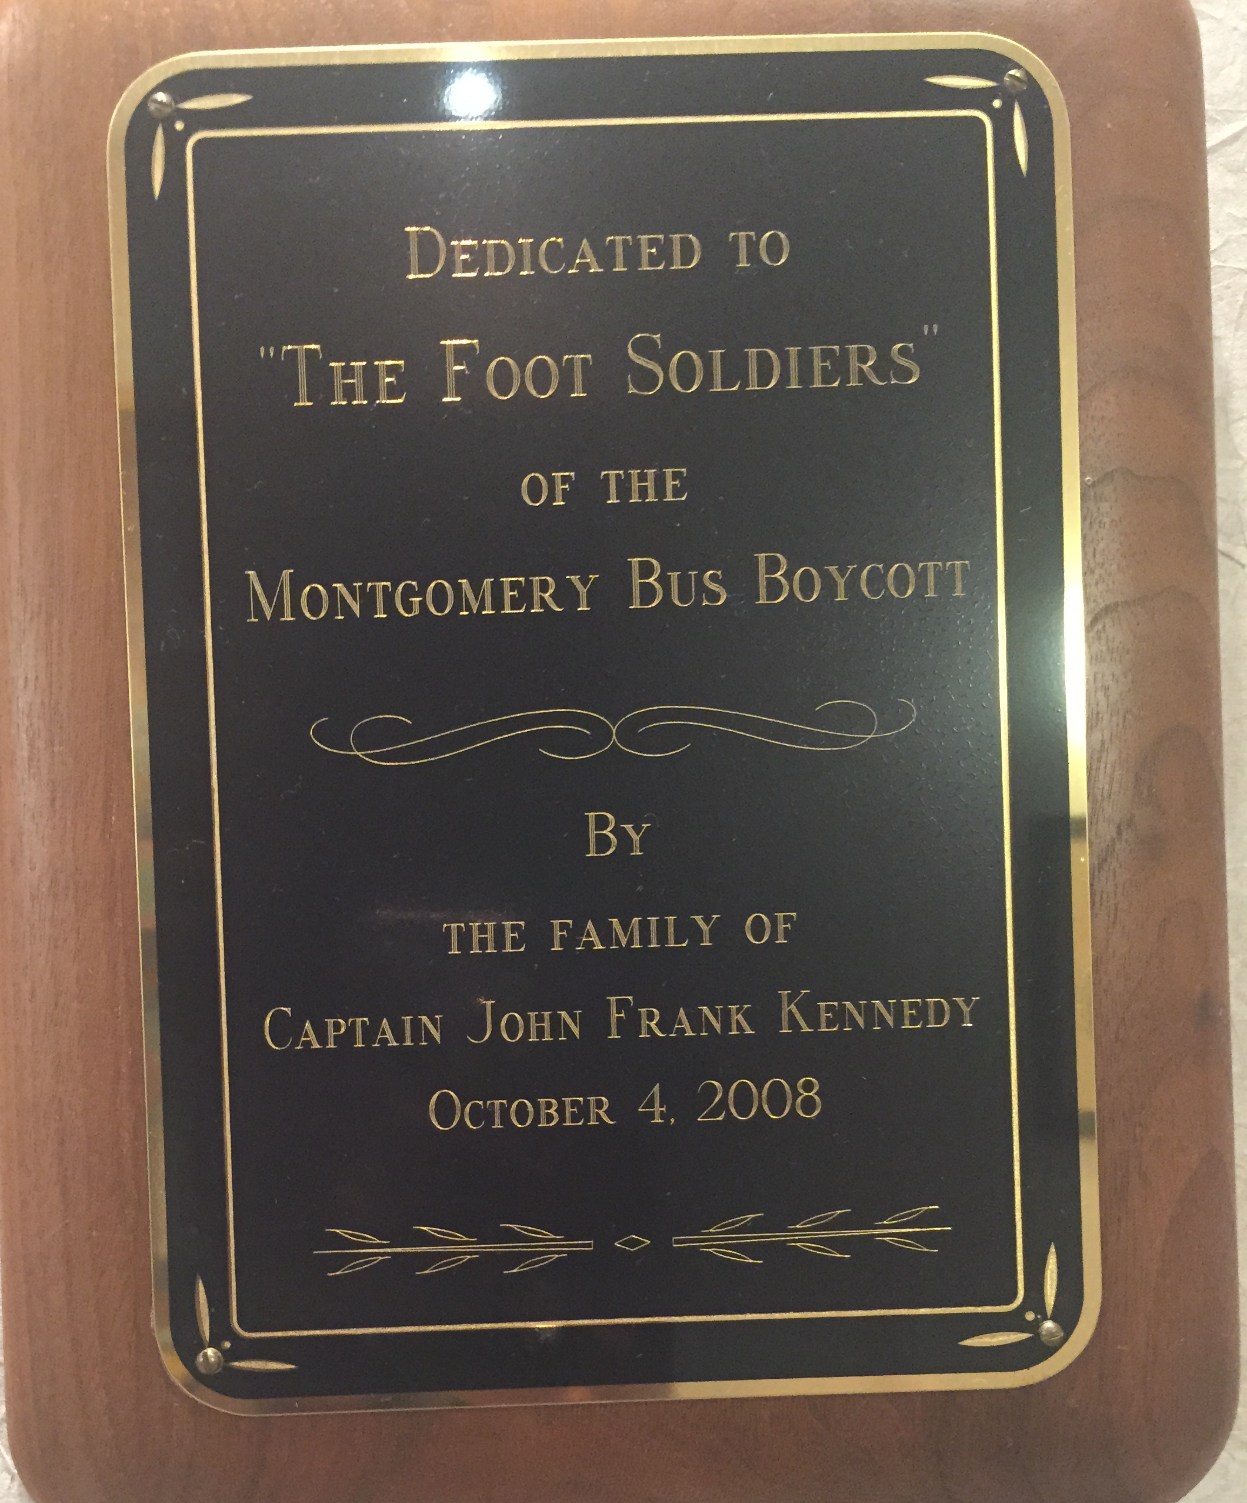 Footd soldiers plaque